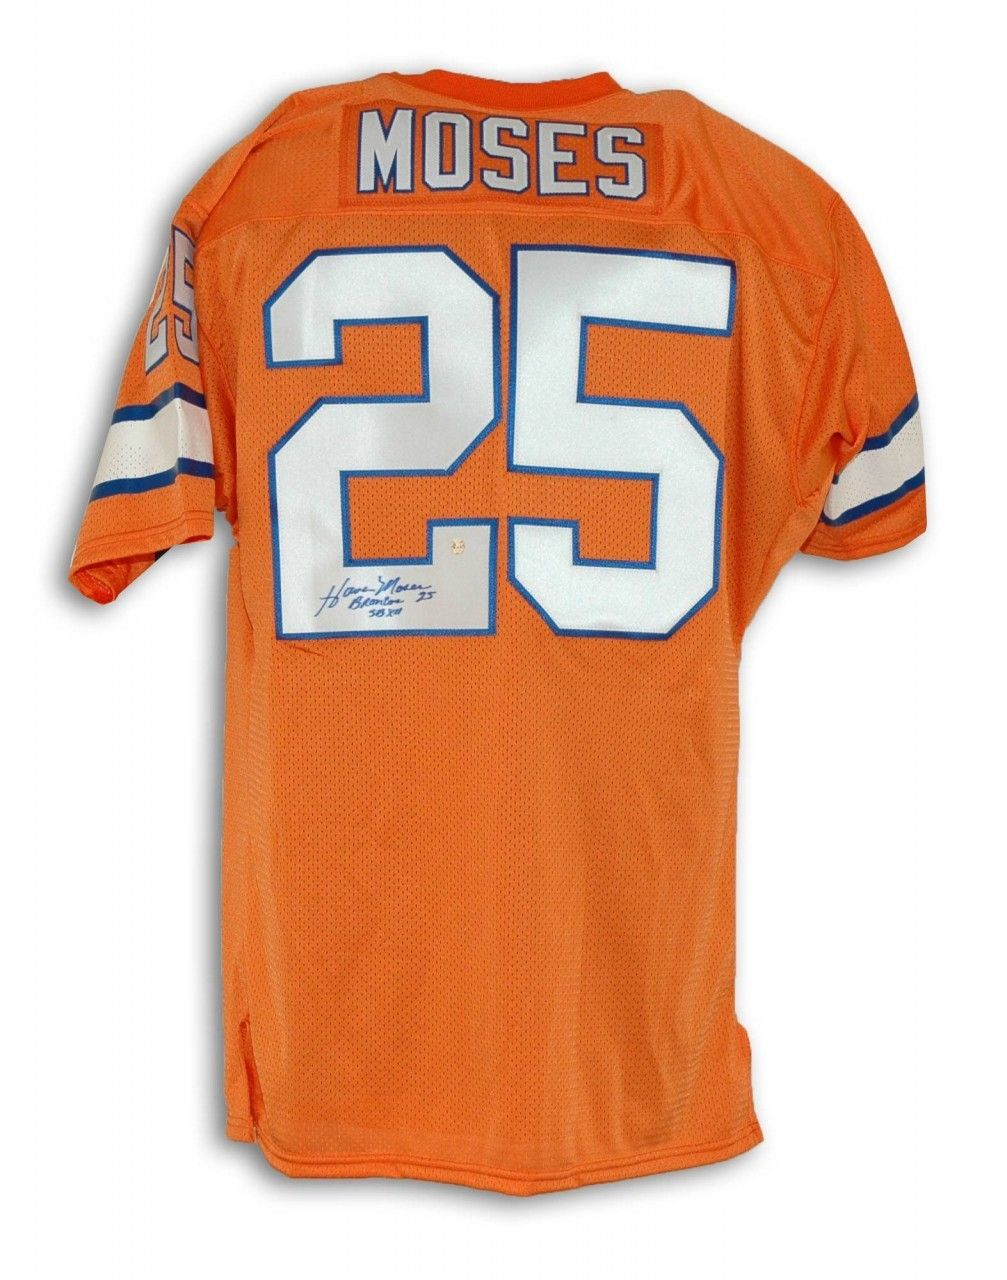 18d8d7ab4c1 AAA Sports Memorabilia LLC - Haven Moses Denver Broncos Autographed  Throwback Jersey Inscribed